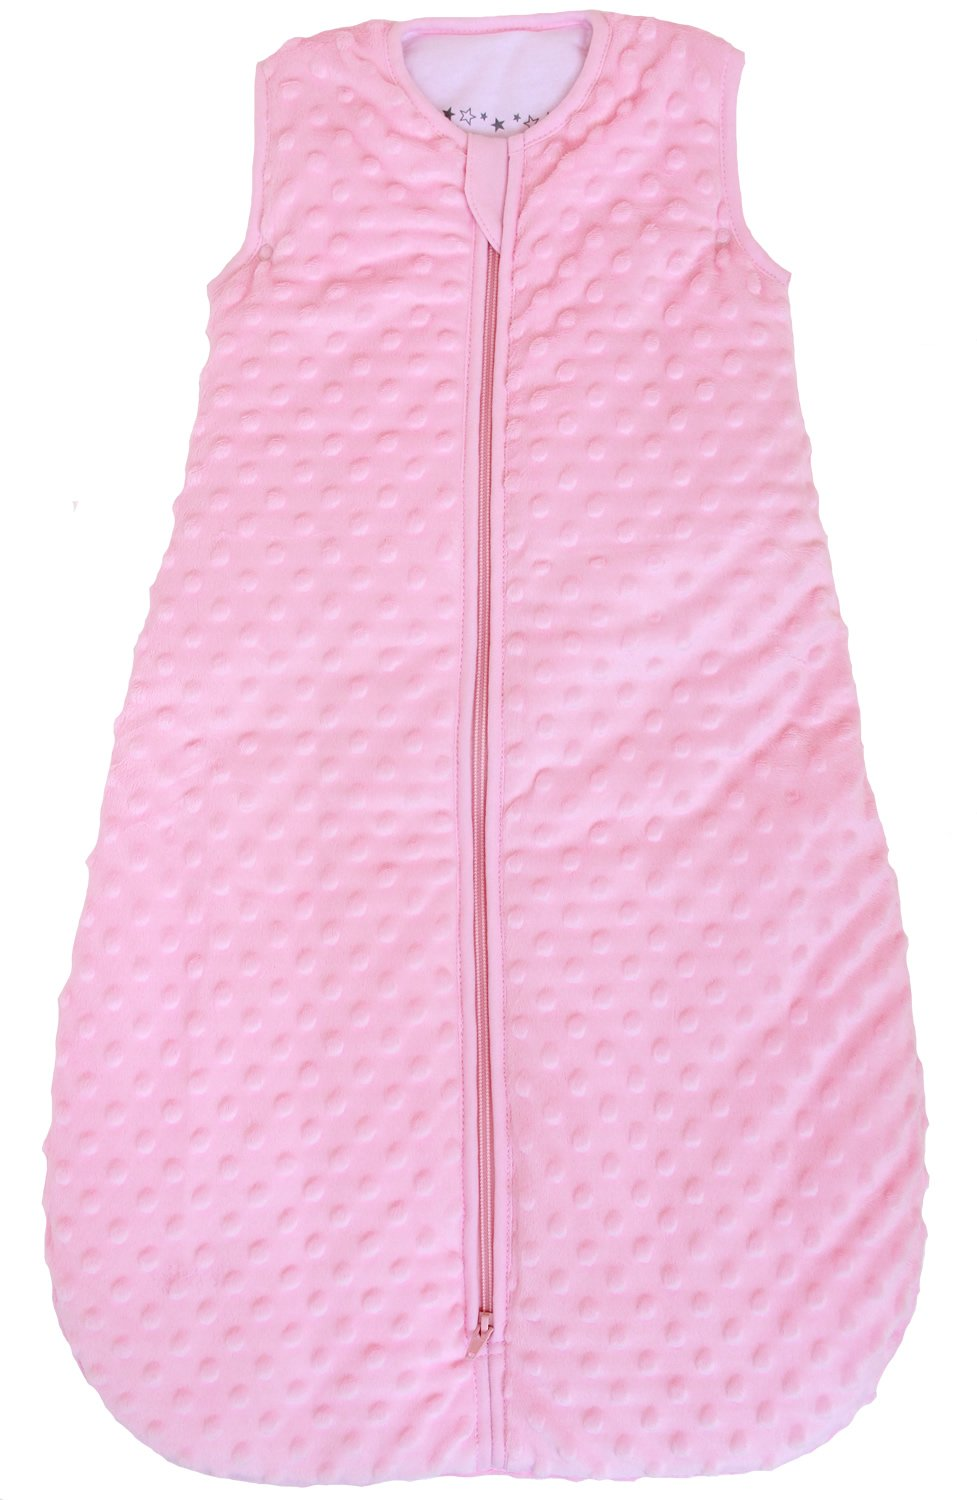 Baby Sleeping Bag ''Minky Dot'' Rose, Quilted Winter Model, 2.5 Togs (Large (22 mos - 3T)) by Baby in a Bag